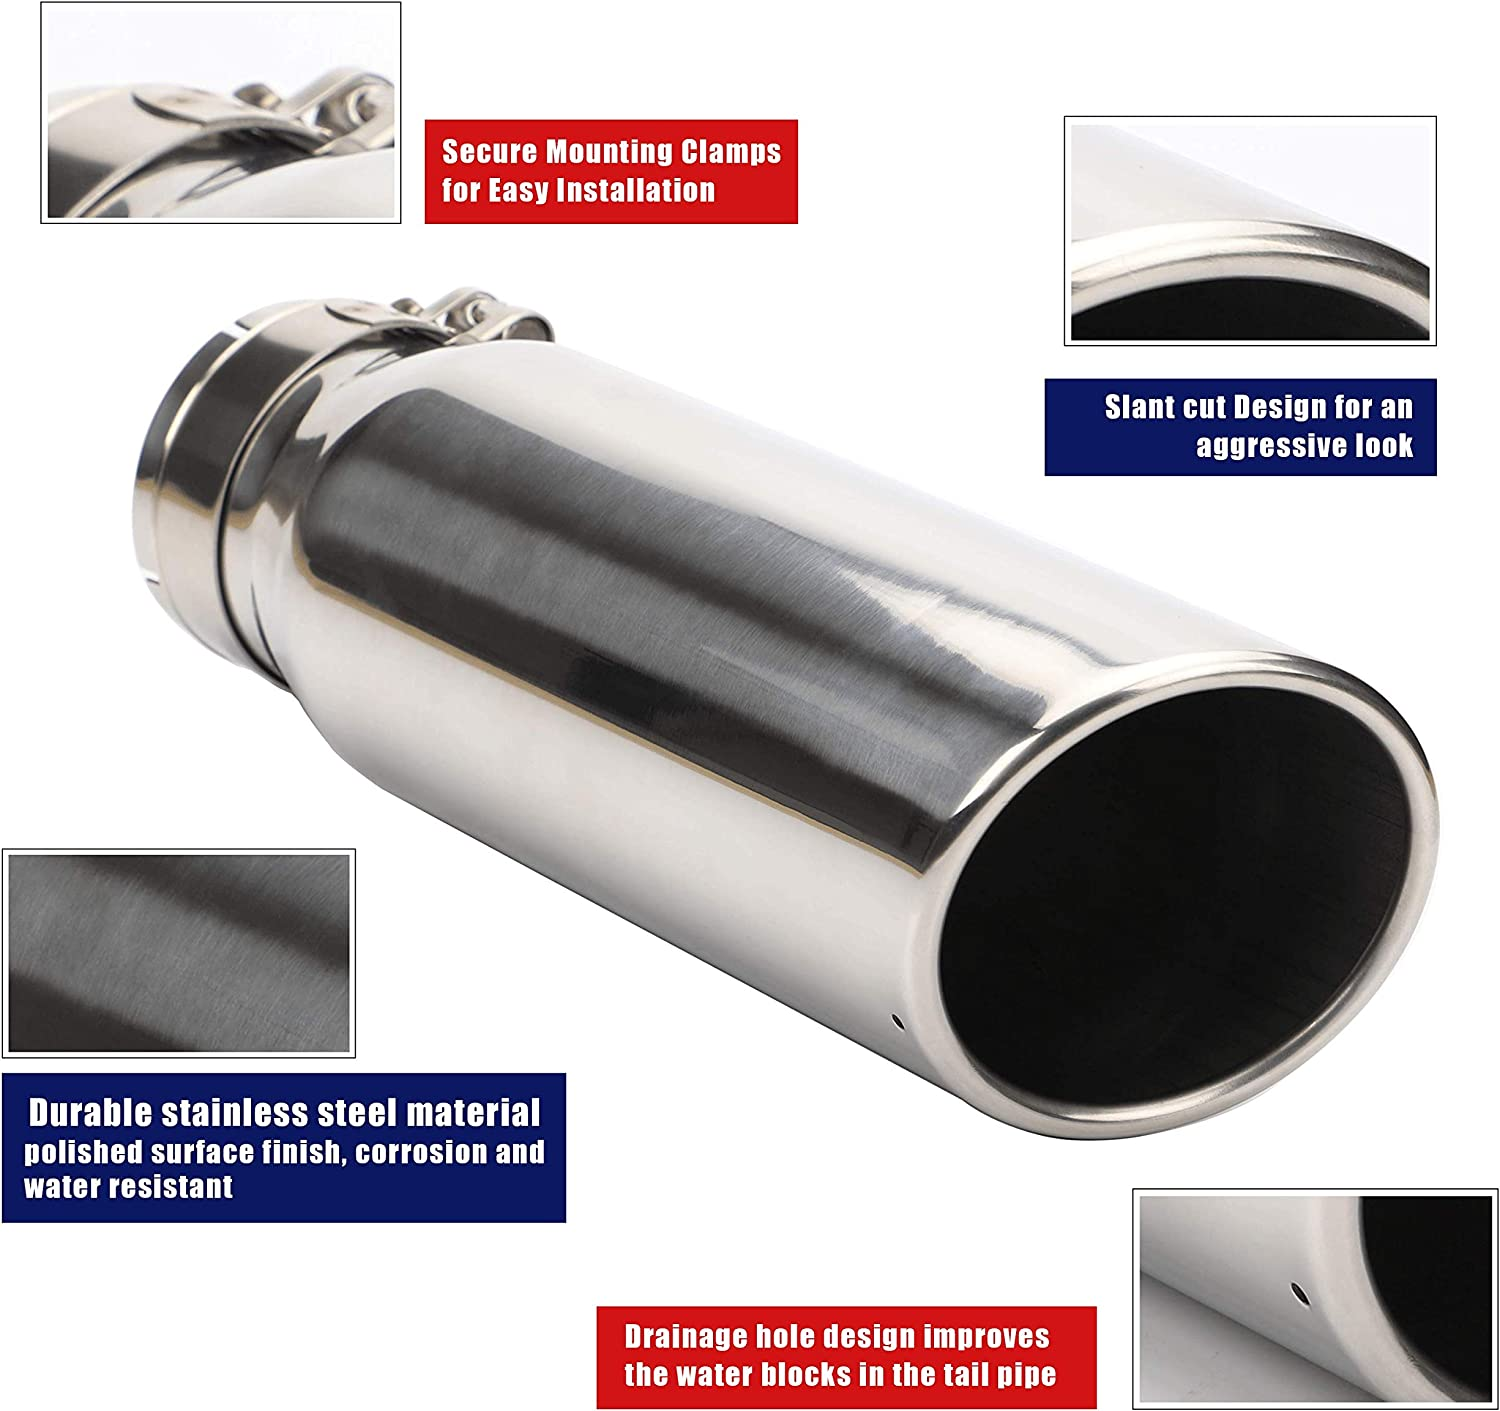 Exhaust Tip 3 Inch Inlet x 4 Inch Outlet x 12 Inch Long Chrome Polished Stainless Steel Angle Cut Rolled Exhaust Tip